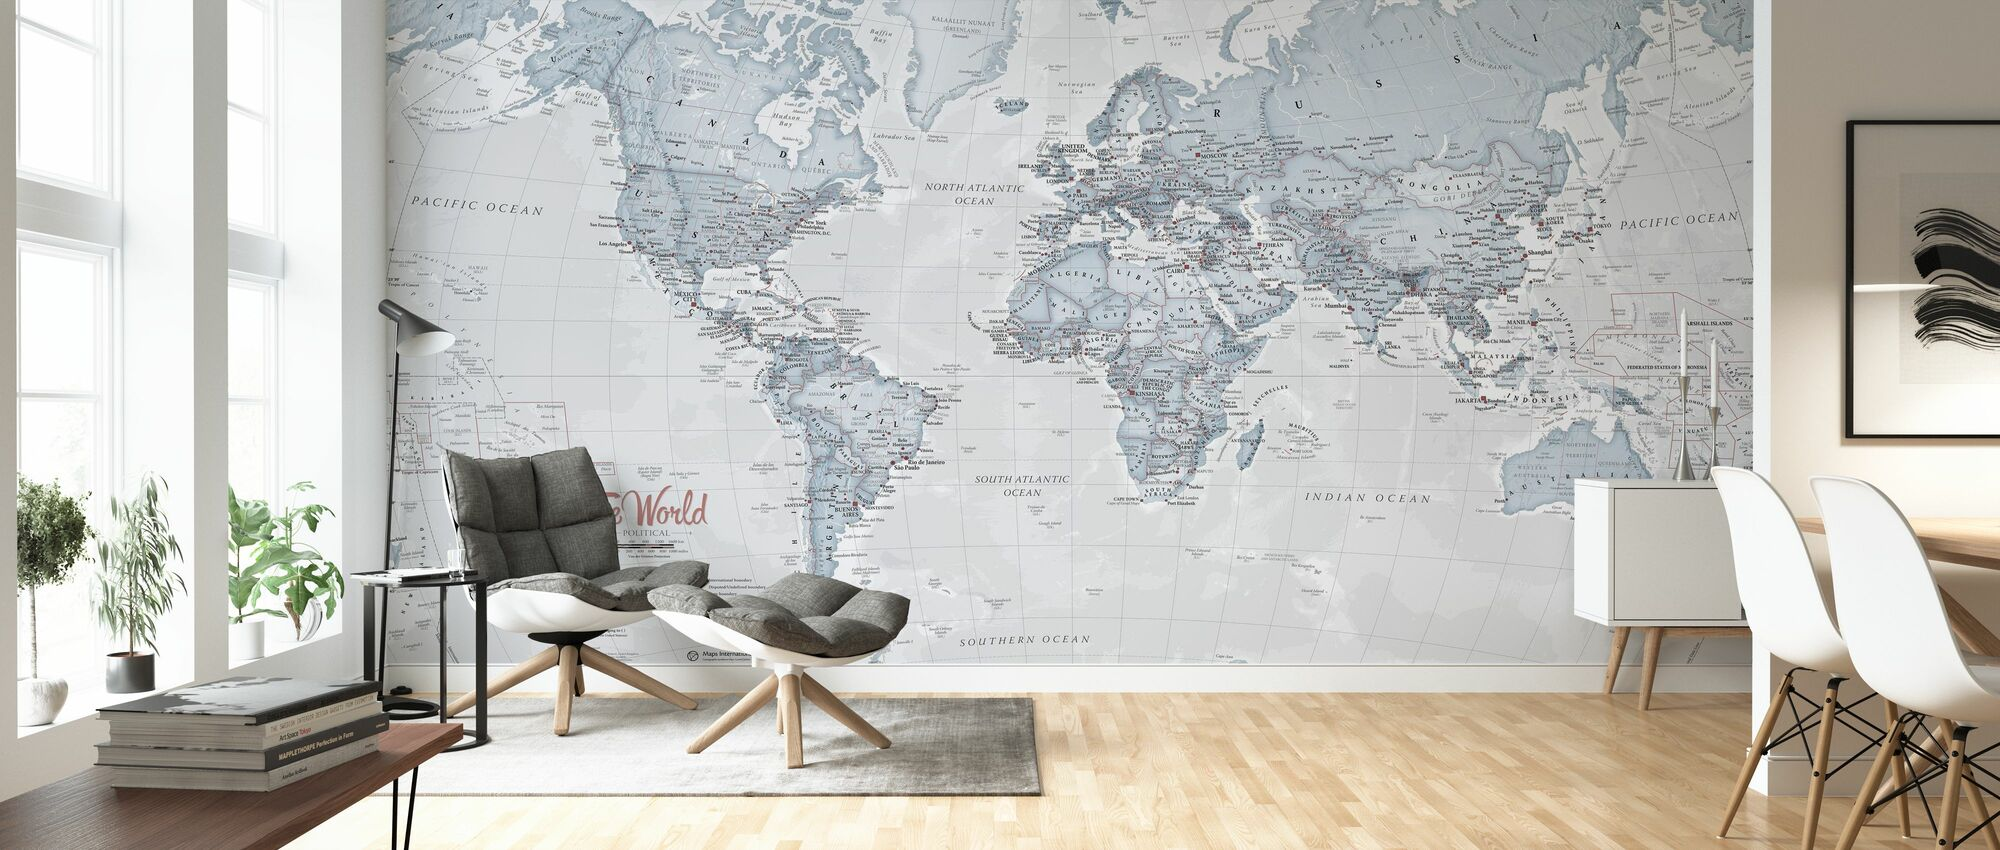 World Map Political Teal - Wallpaper - Living Room